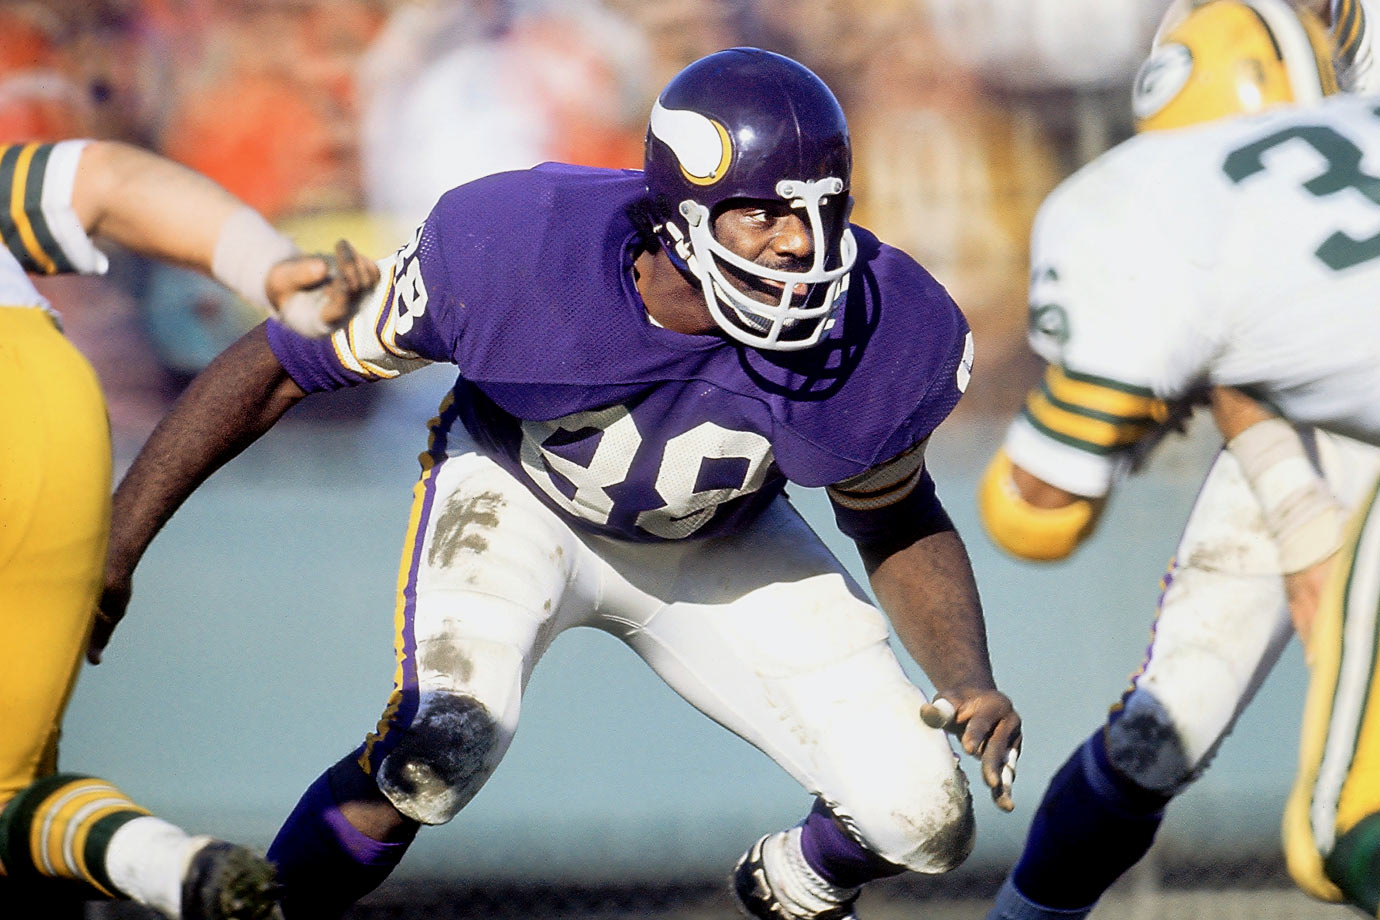 The Minnesota defensive line was full of talent, but there was little doubt that Page was the best of the lot. He won the NFL's Most Valuable Player award in 1971, a nearly unprecedented honor for a defensive player, and he made nine Pro Bowls with six first-team All-Pro honors. Waived by the Vikings in 1978, he went on to play in the formative years of the great Bears defenses of the 1980s.